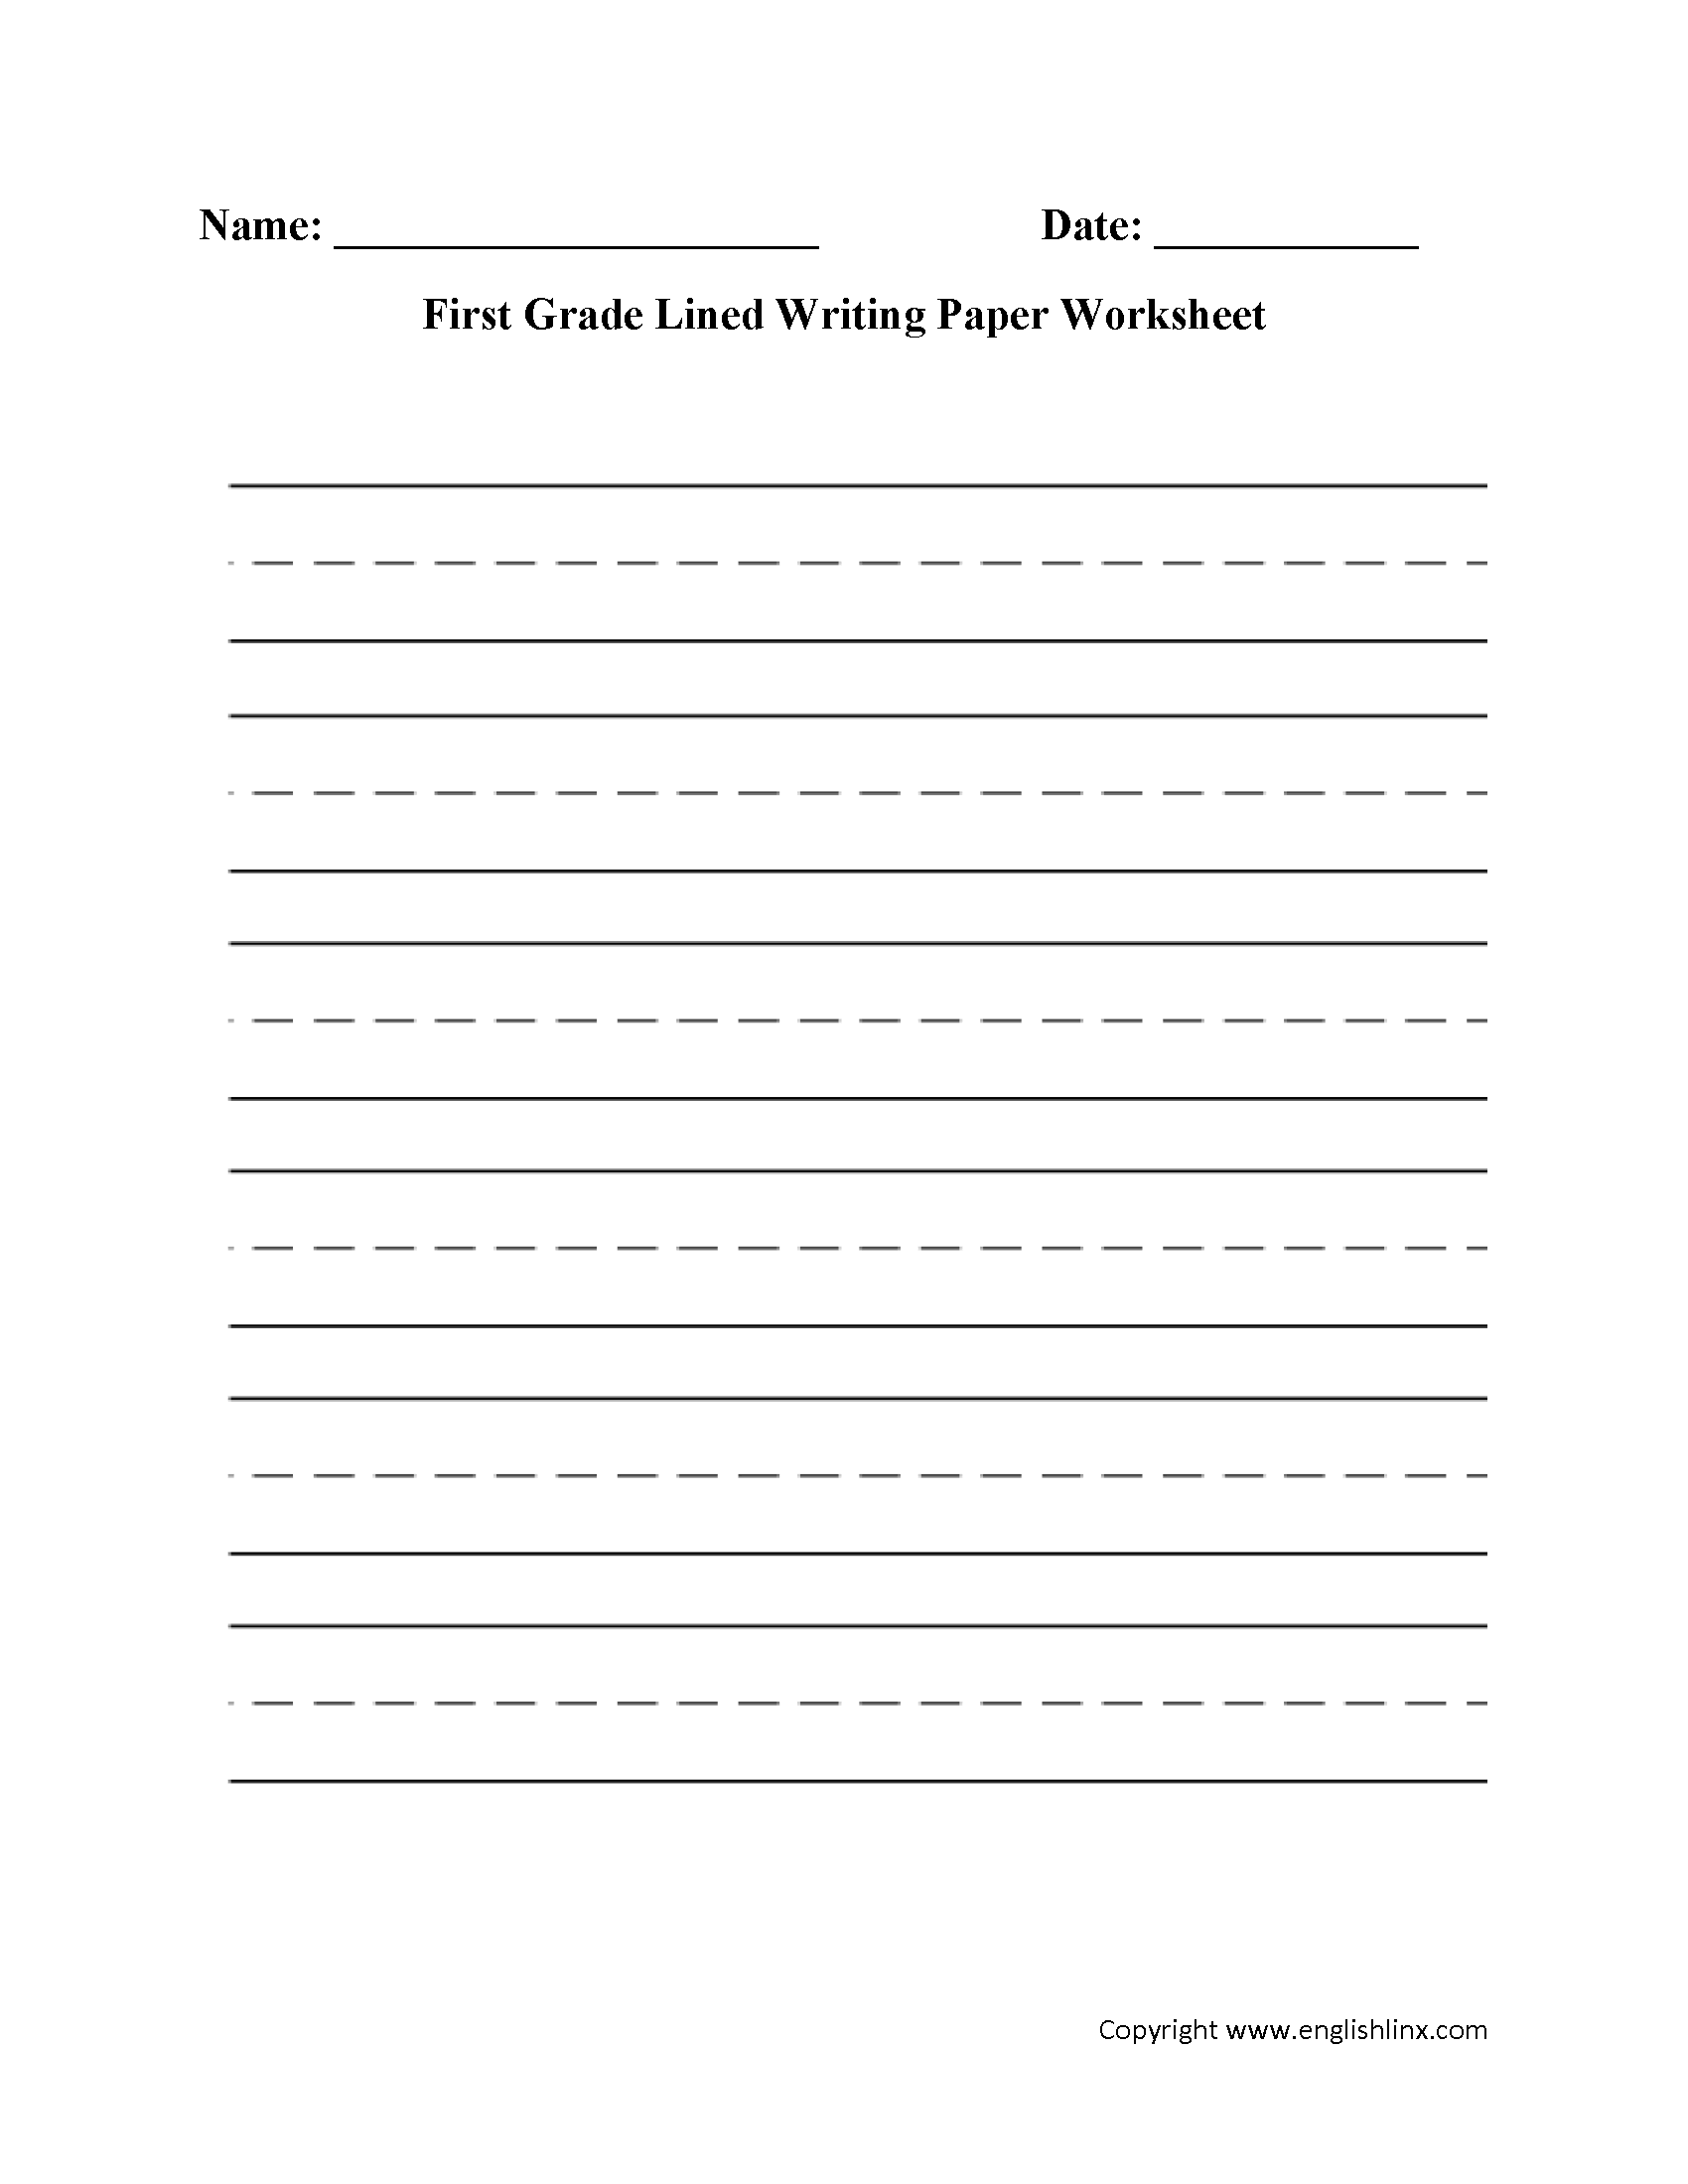 hight resolution of Writing Worksheets Lined Writing Paper Worksheets - Best Writing Worksheets  Lined Writing Pap…   Writing lines